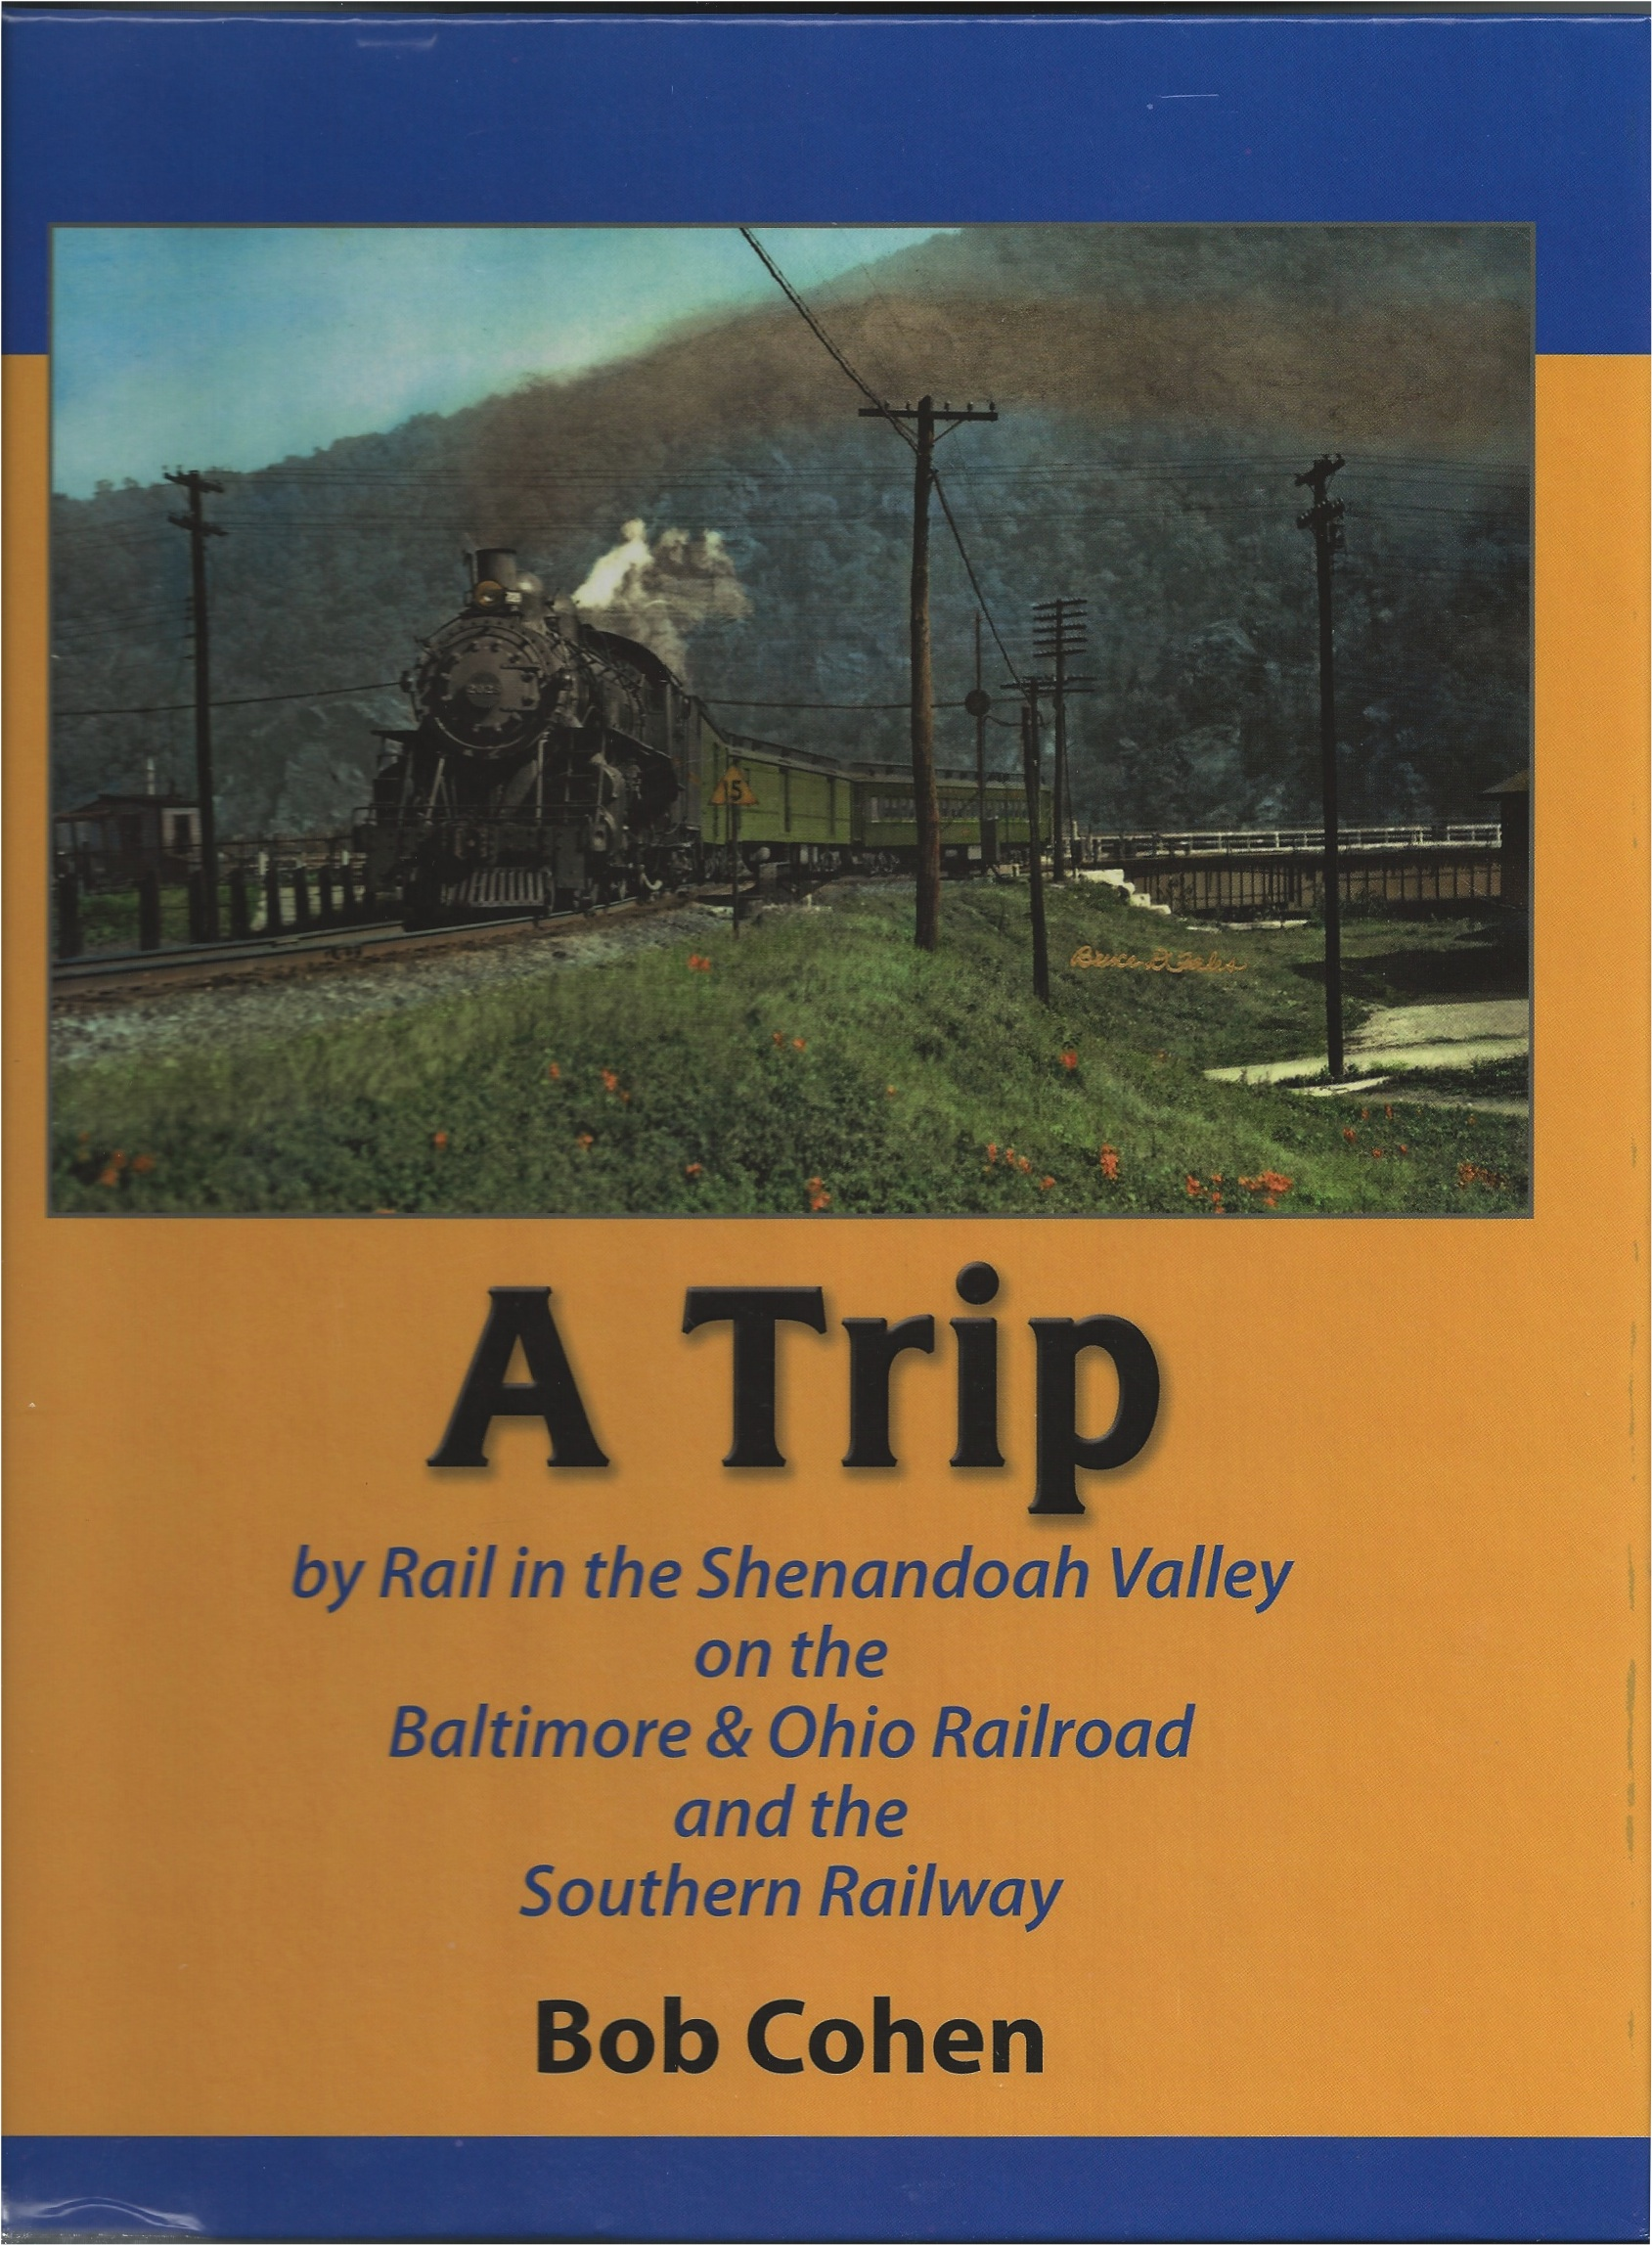 A TRIP BY RAIL IN THE SHENANDOAH VALLEY ON THE B&O RR AND SOUTHERN RY